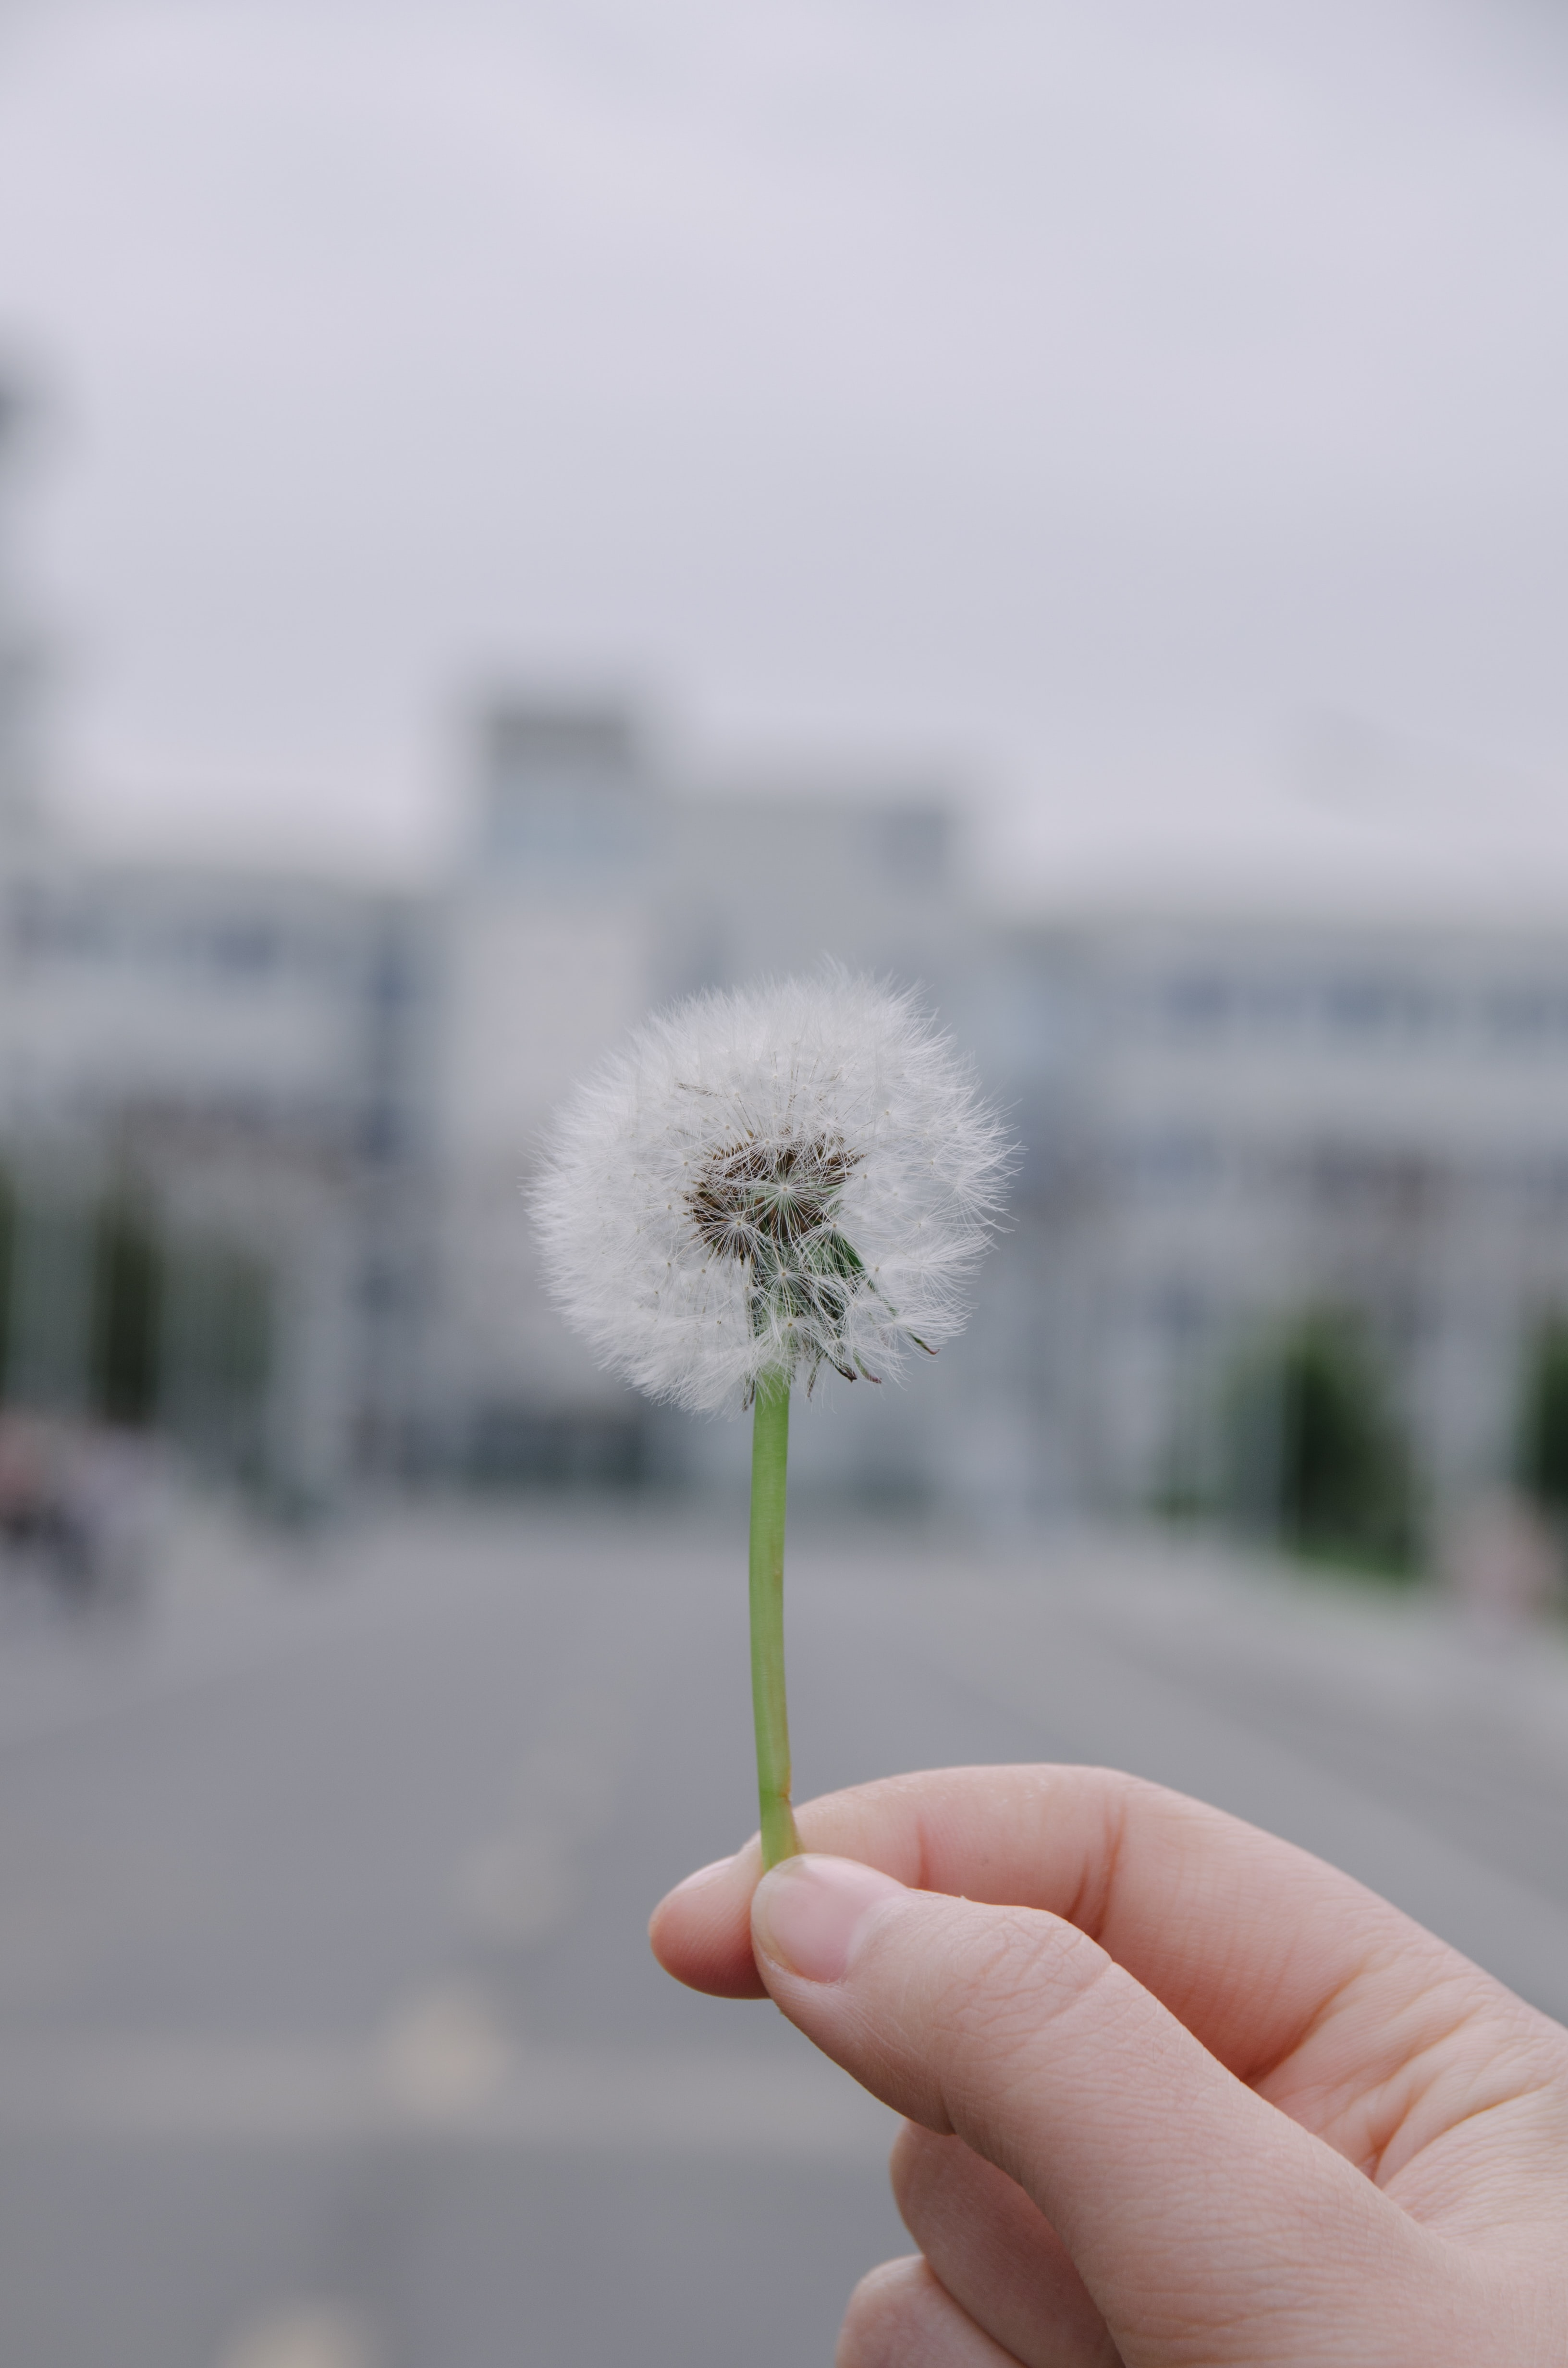 selective focus photography of person holding dandelion